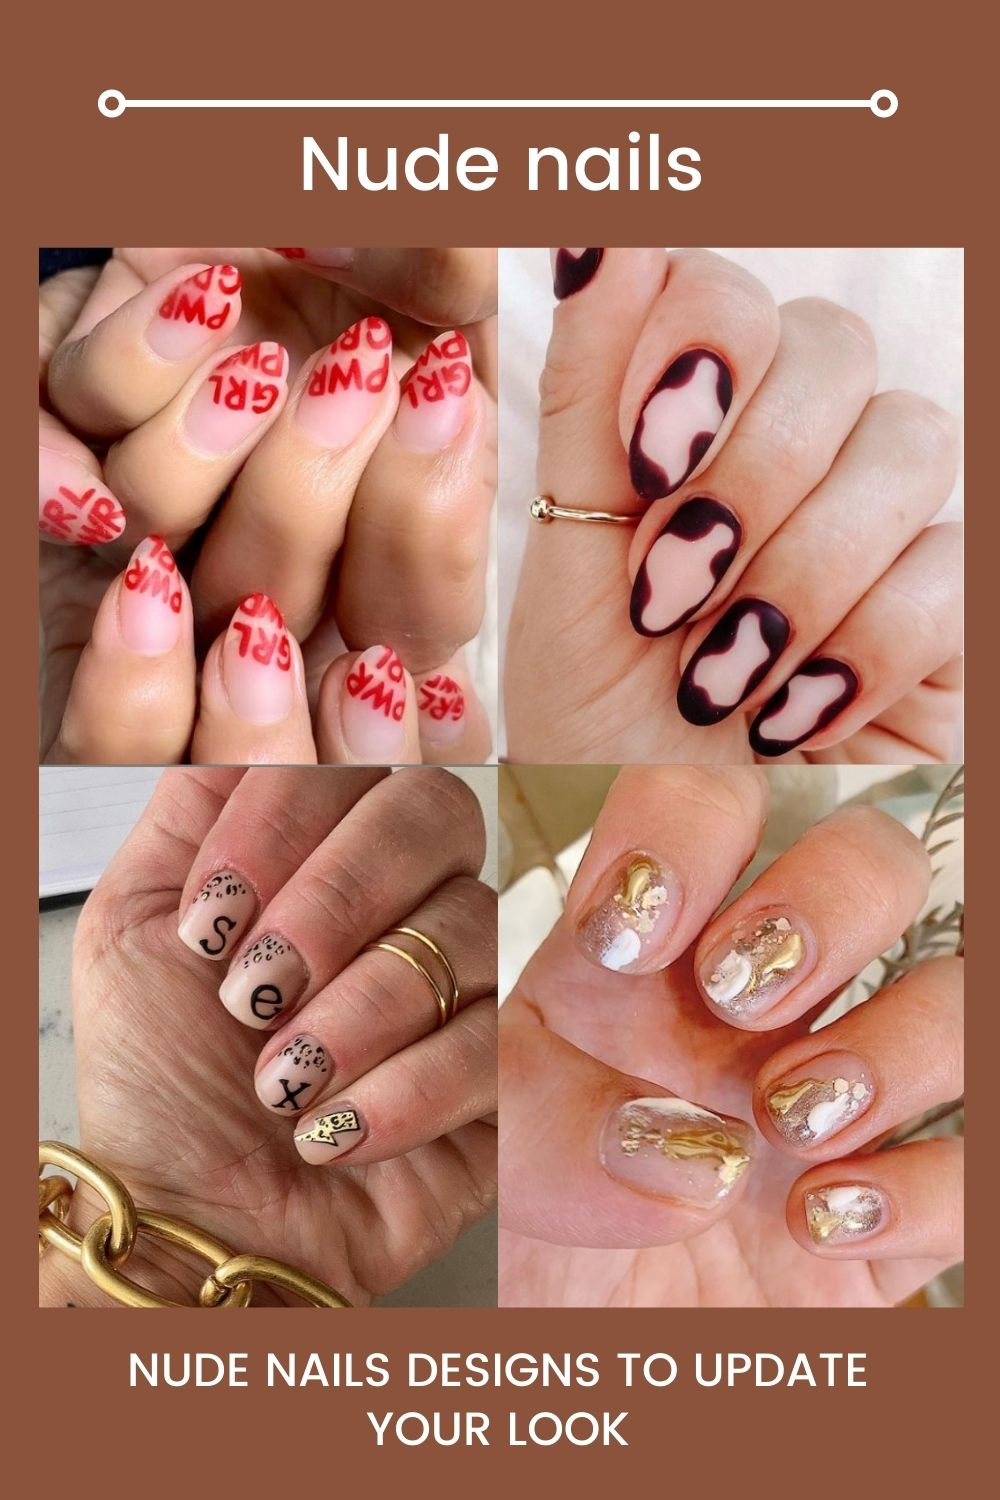 2021 nude color nails | Nail design updates your look